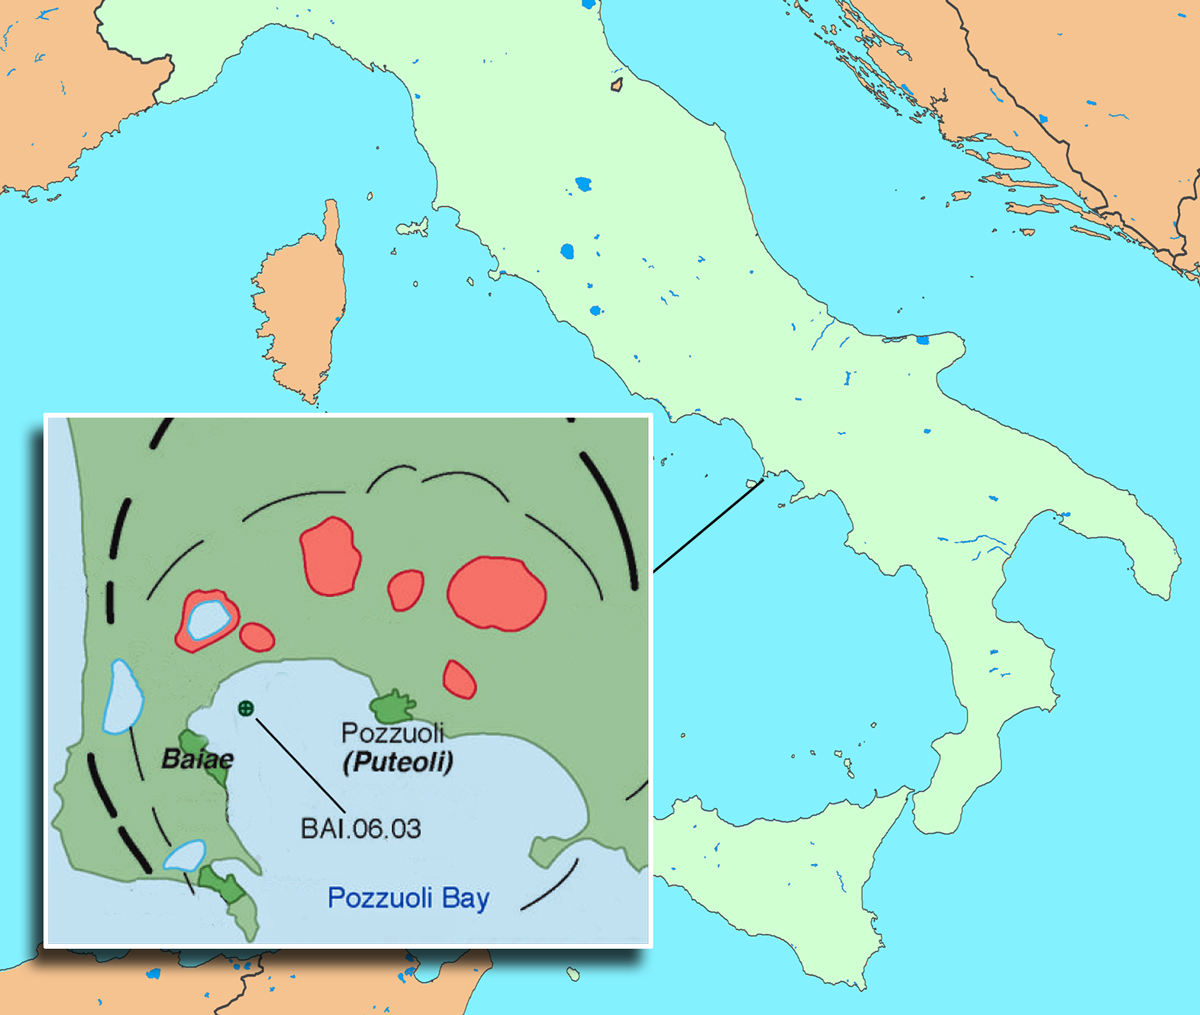 Pozzuoli Bay defines the northwestern region of the Bay of Naples. The concrete sample examined at the Advanced Light Source by Berkeley researchers, BAI.06.03, is from the ancient harbor of Baiae, one of many ancient underwater sites in the region. Black lines indicate caldera rims, and red areas are volcanic craters. (Click on image for best resolution.)